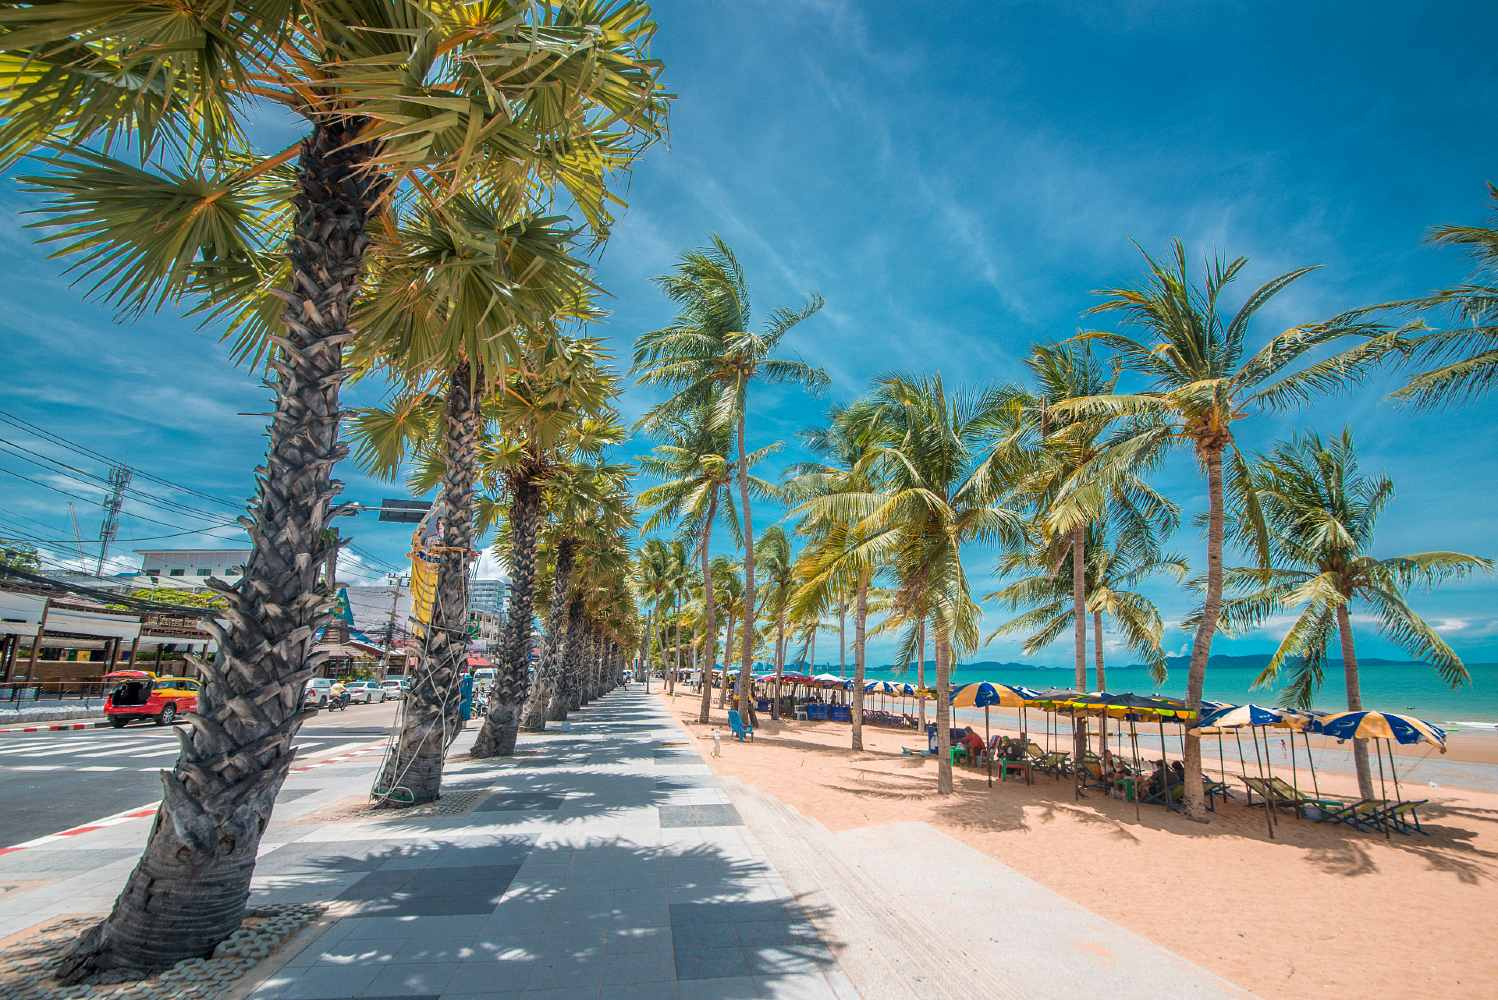 Beach on promenade with palm trees in Pattaya